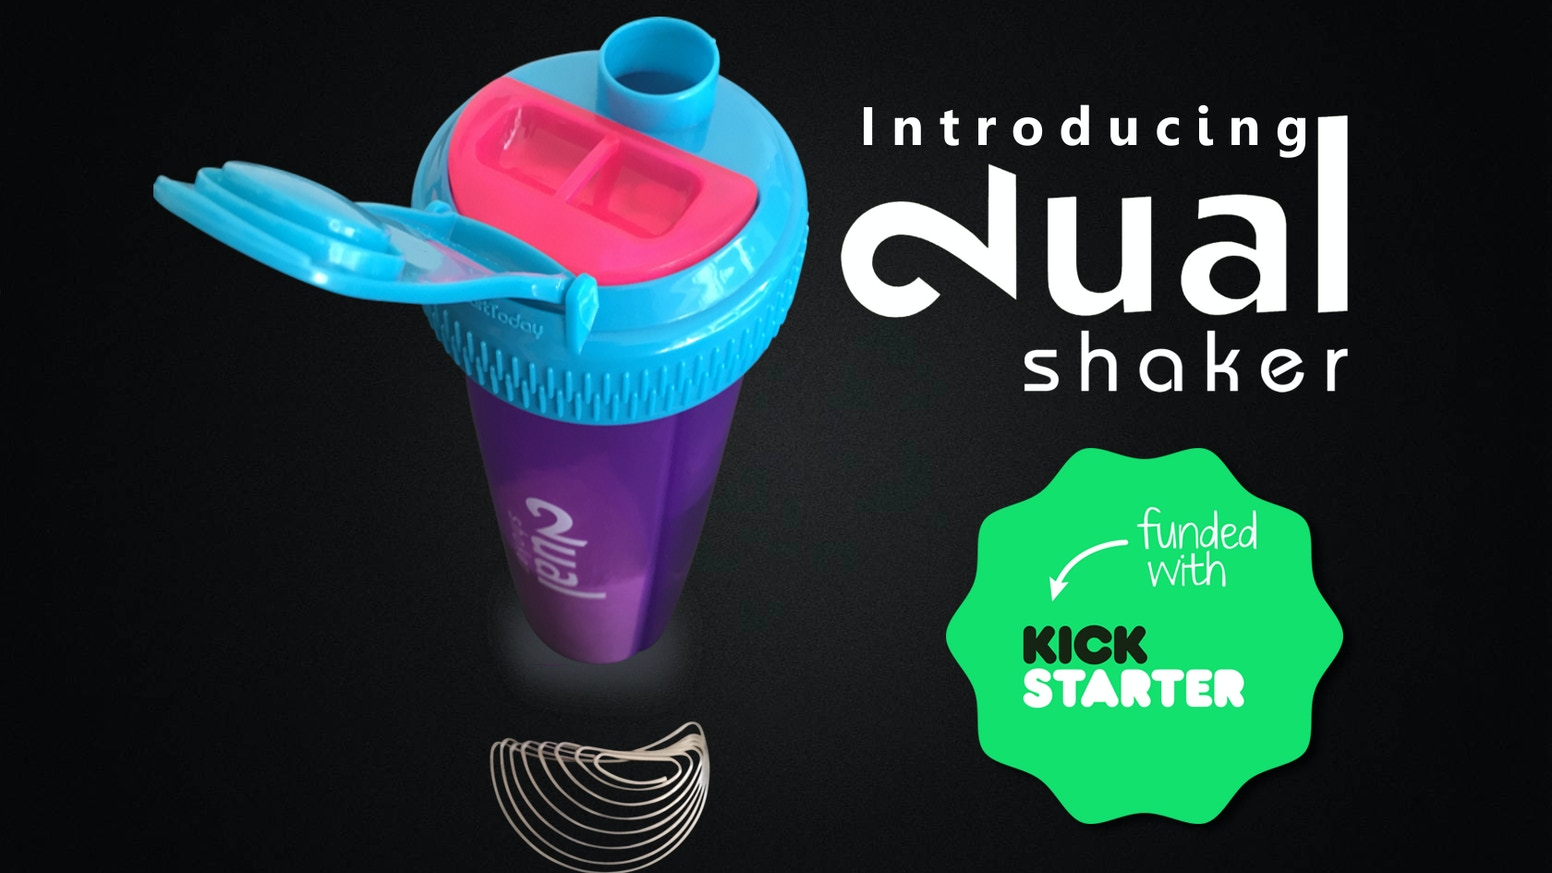 The Dual Shaker is a two-chamber bottle that helps you make fresh drinks anytime, anywhere.  Just twist, shake, and you're done!